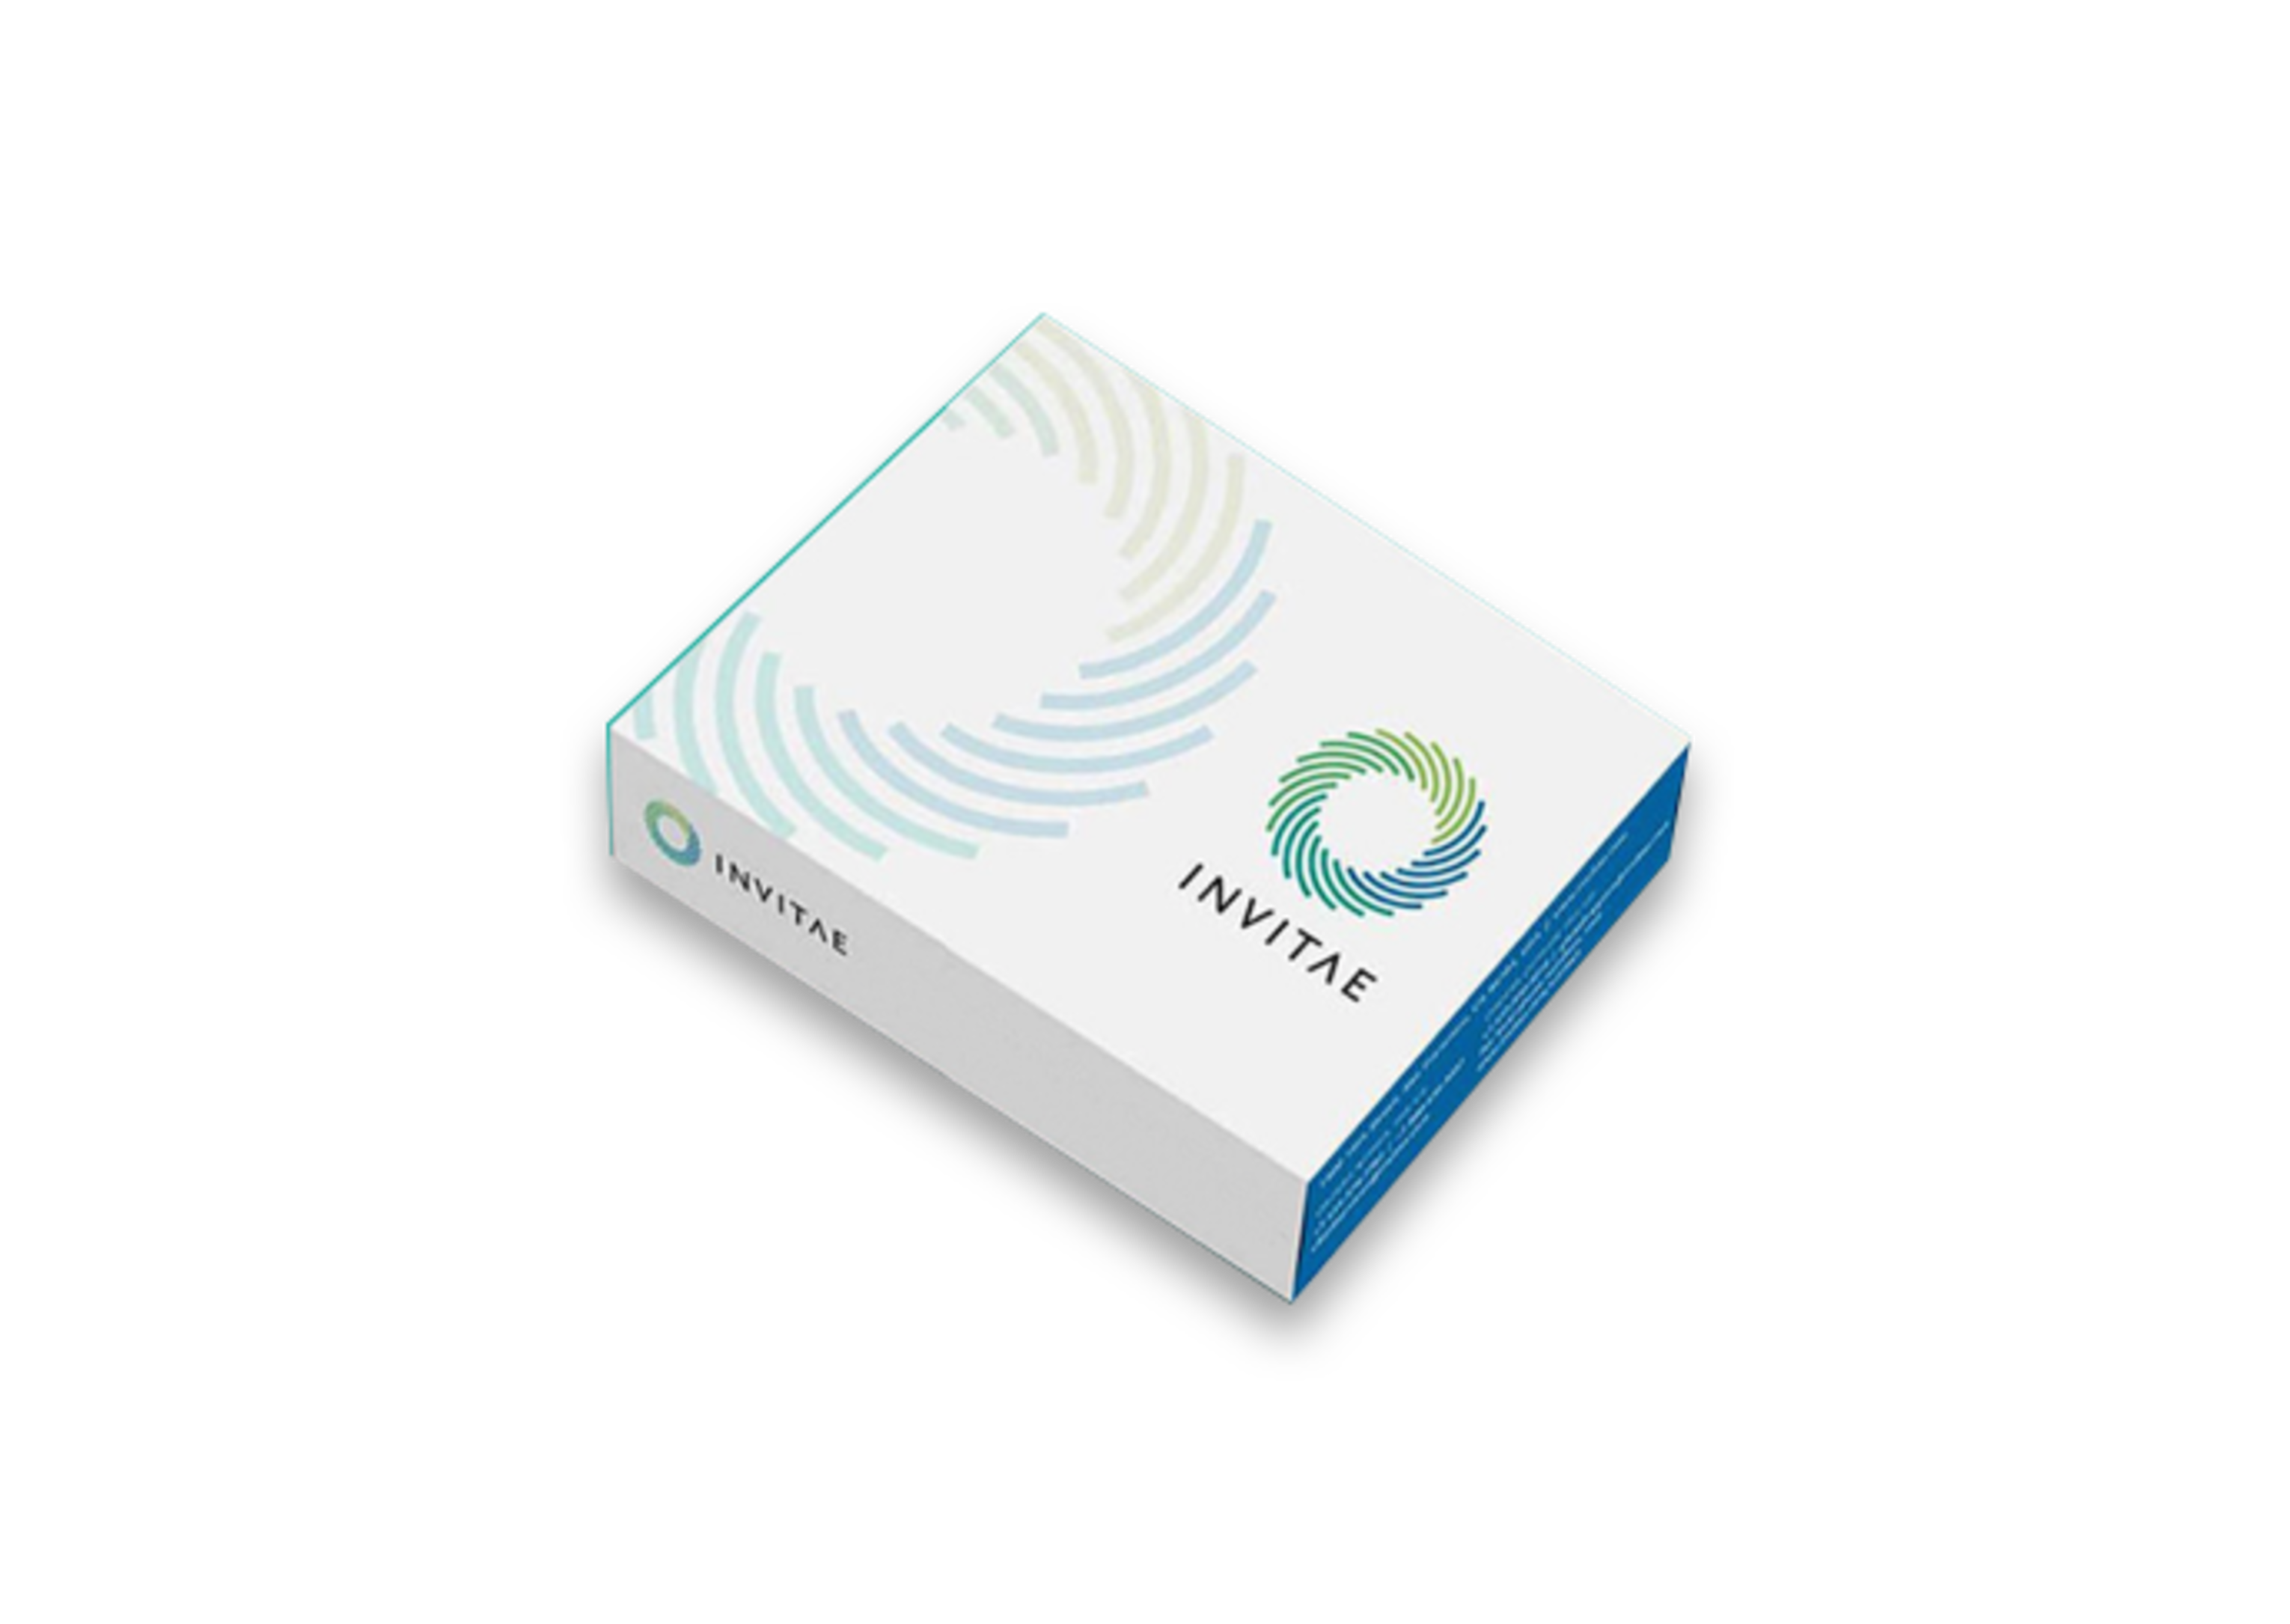 Invitae kit box for product card